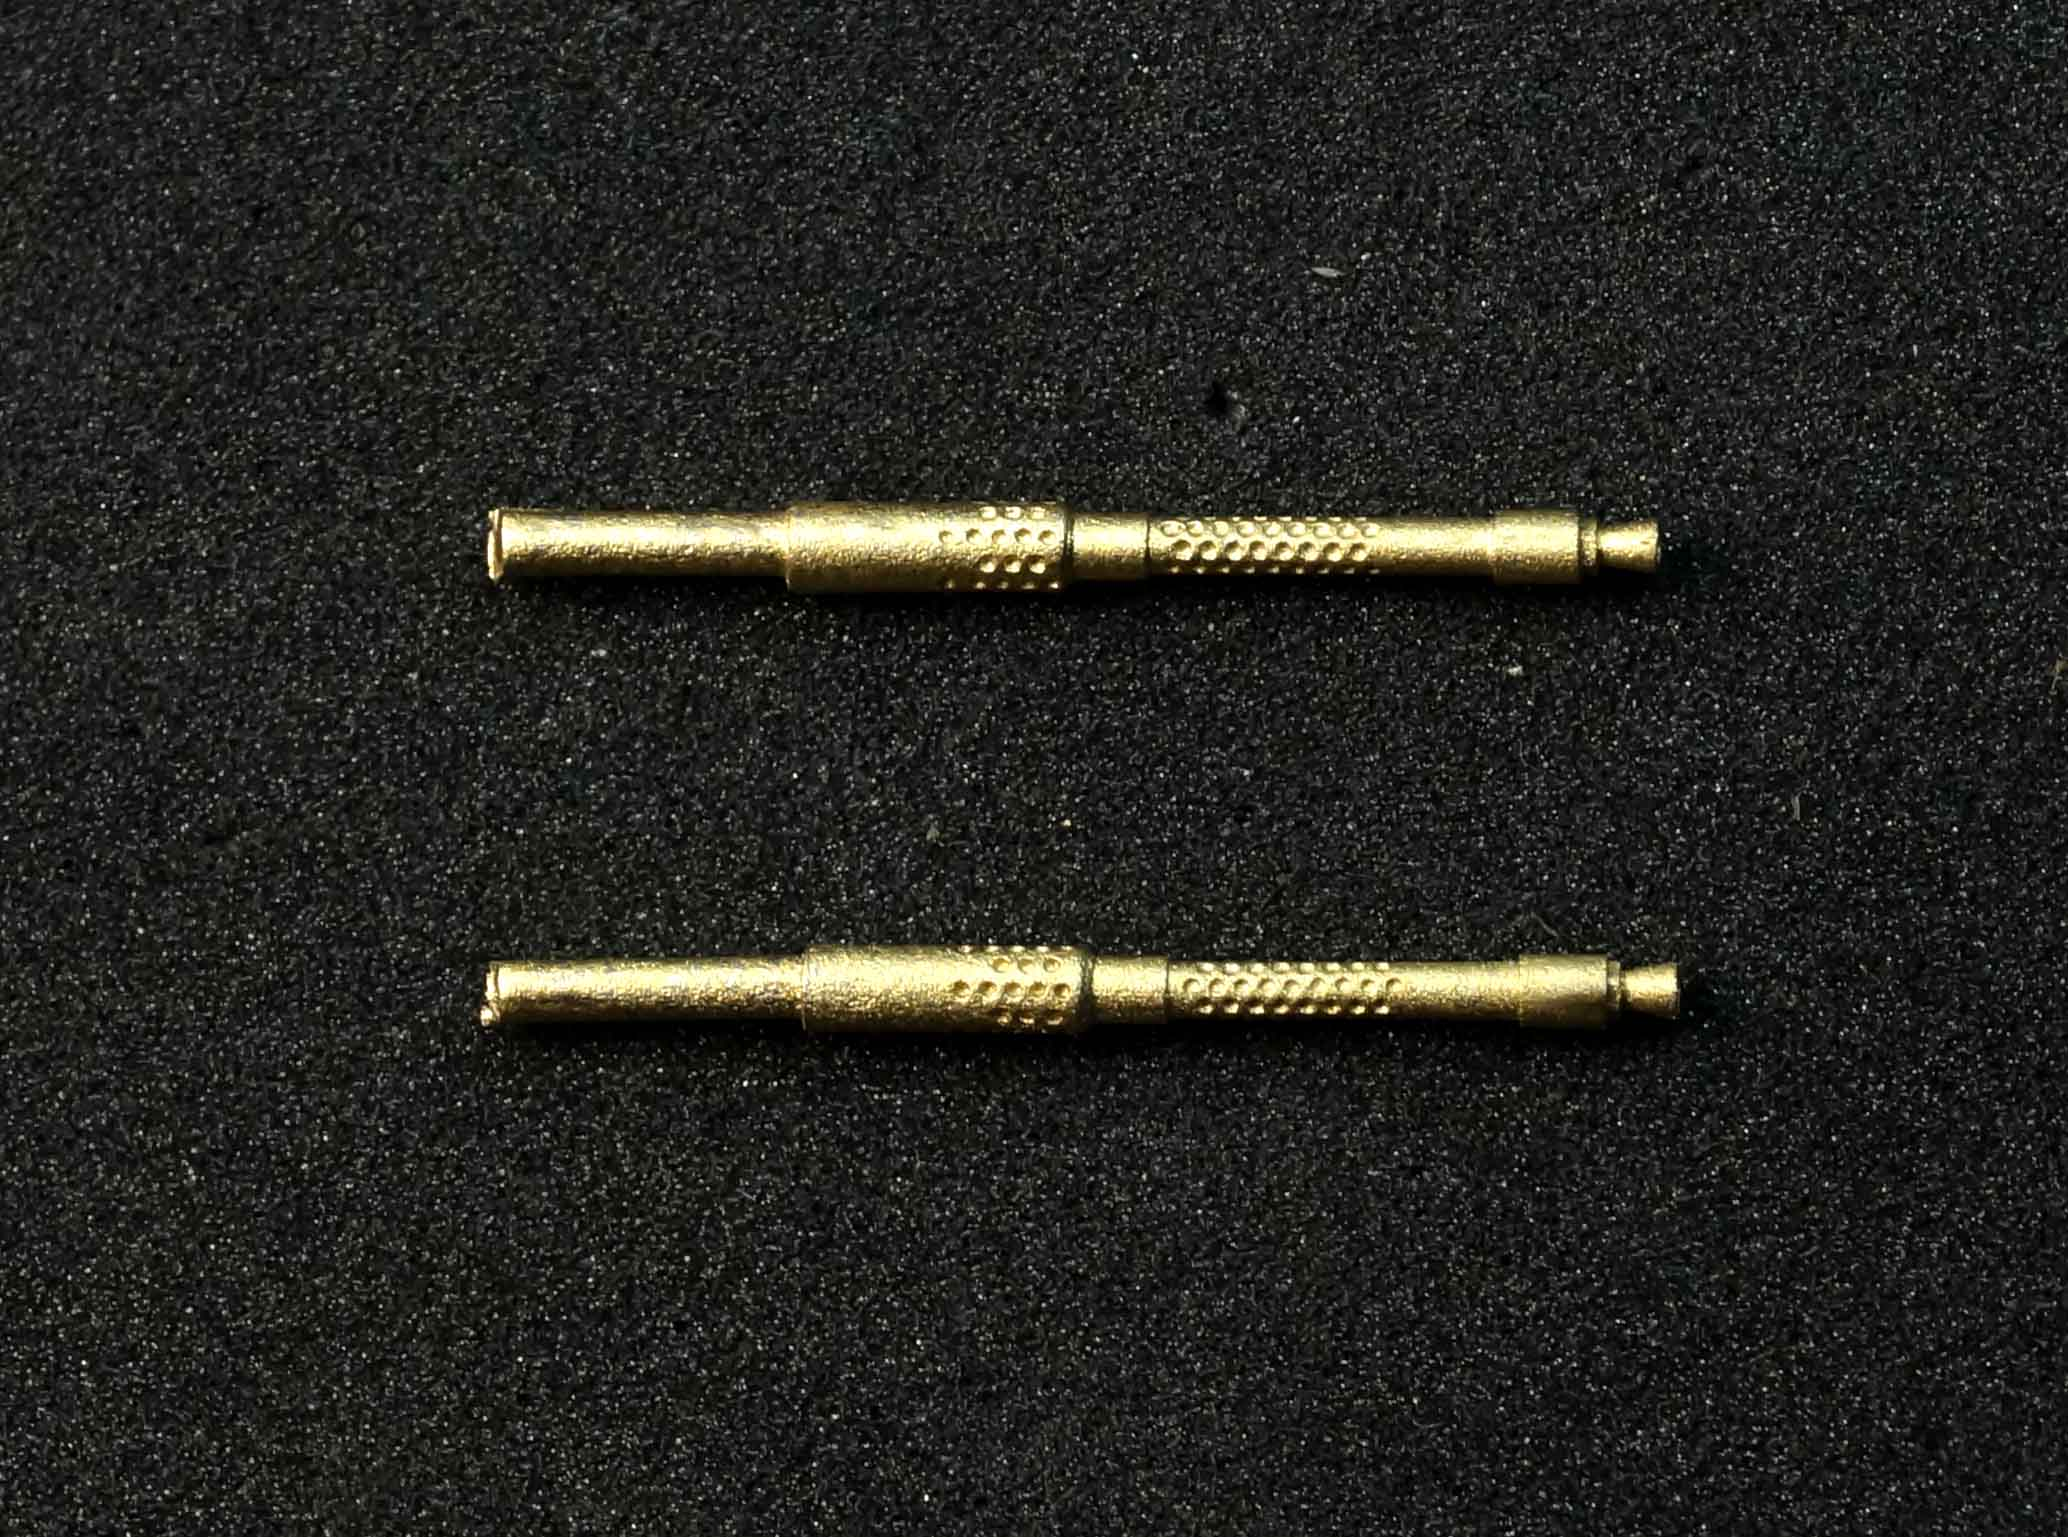 Miniworld 1/48 MG-131 German WWII machine gun barrel (2 pieces)